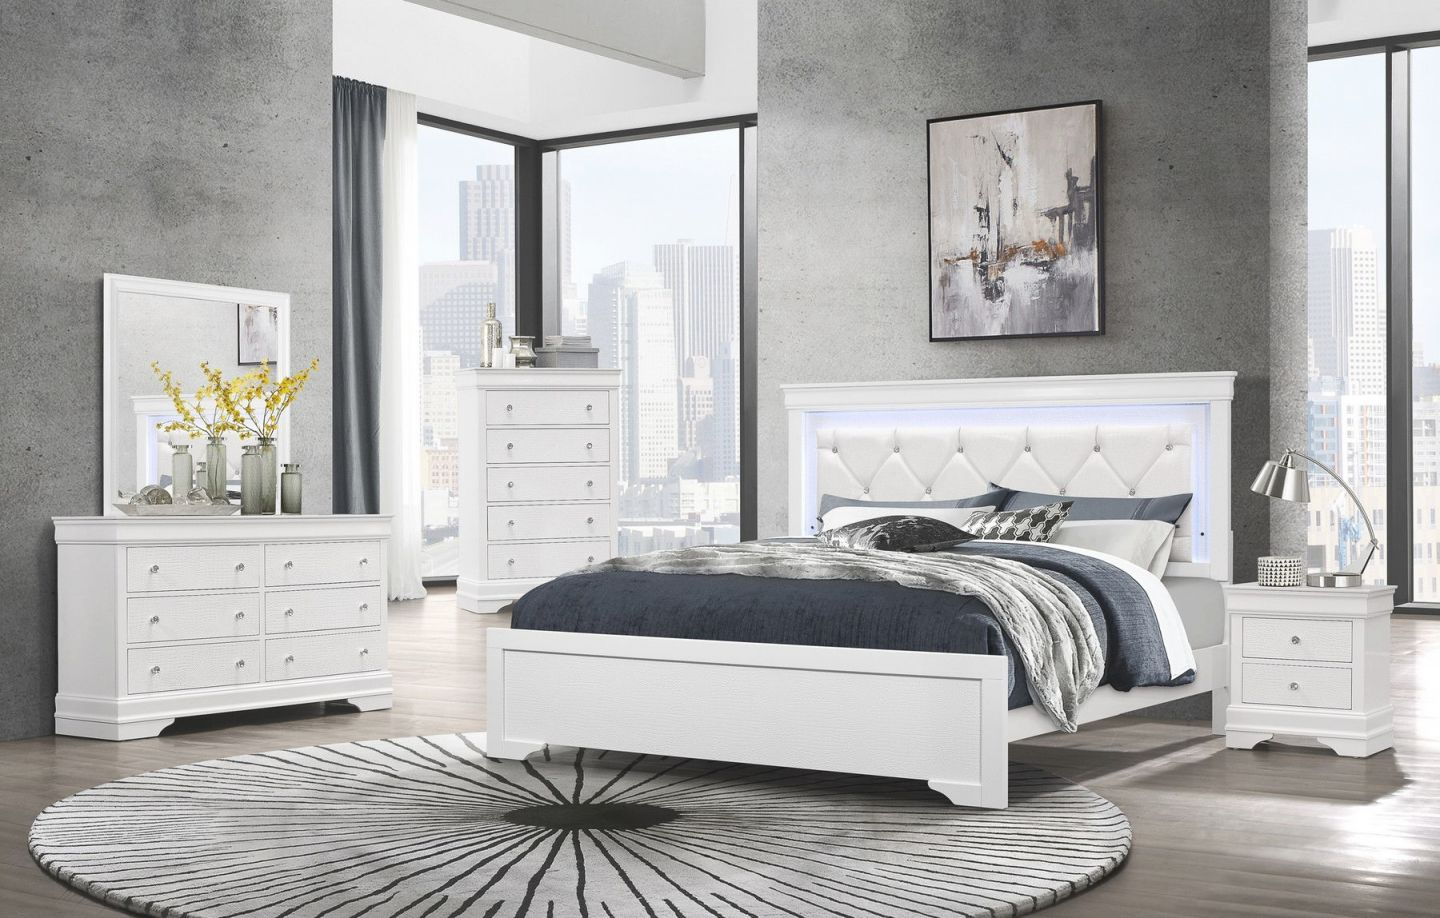 Pompei White Queen Set Queen Size B,2Ns,dr,mr throughout Bedroom Set Queen Size